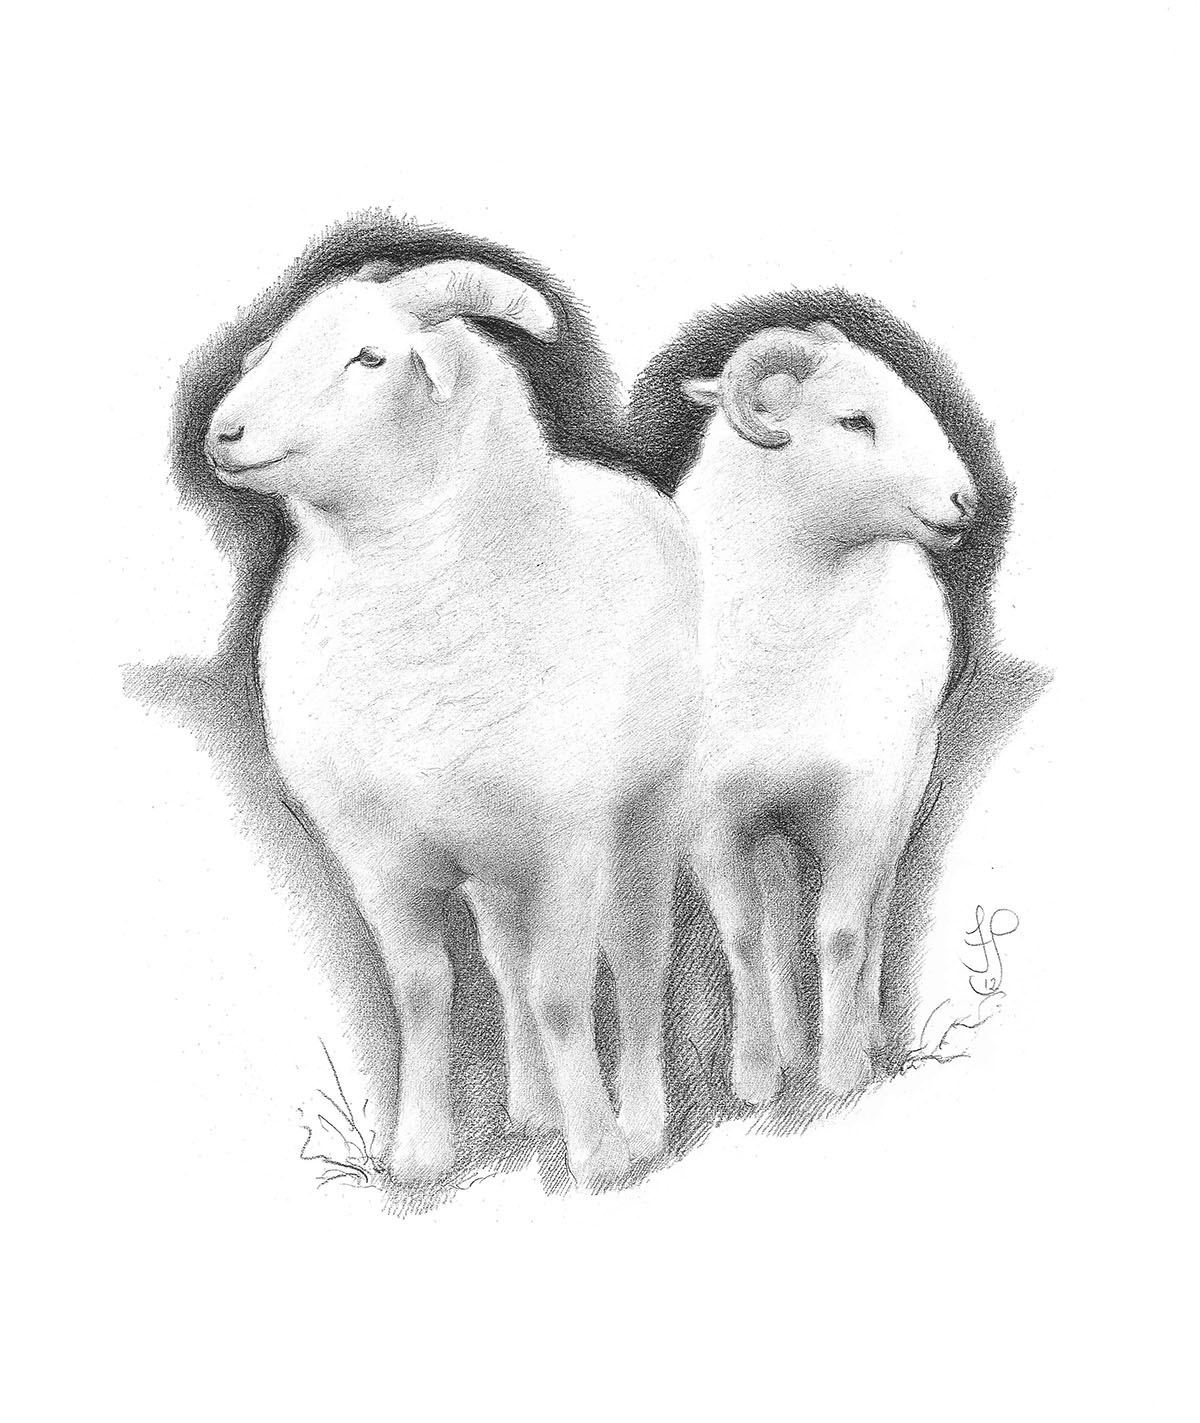 Wiltshire Horn Rams - 56 x 44 cm. Carbon pencil drawing. Framed.